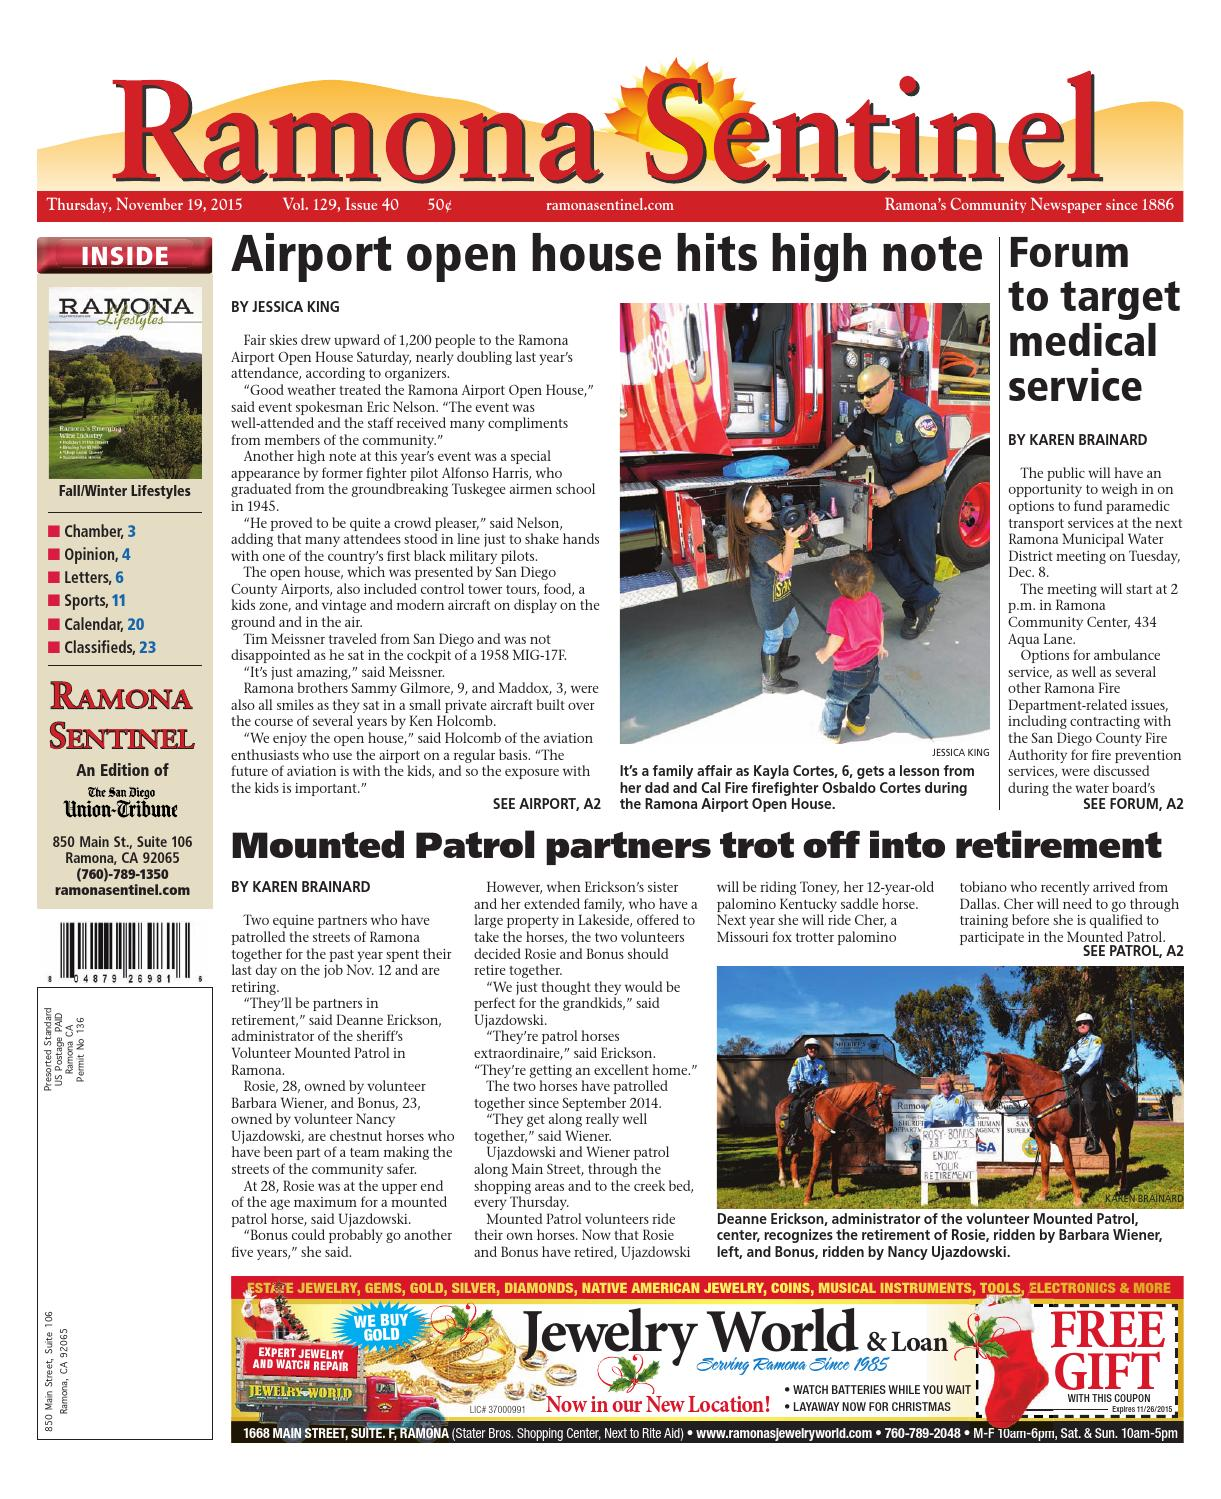 Ramona Sentinel 11.19.15 by MainStreet Media - issuu